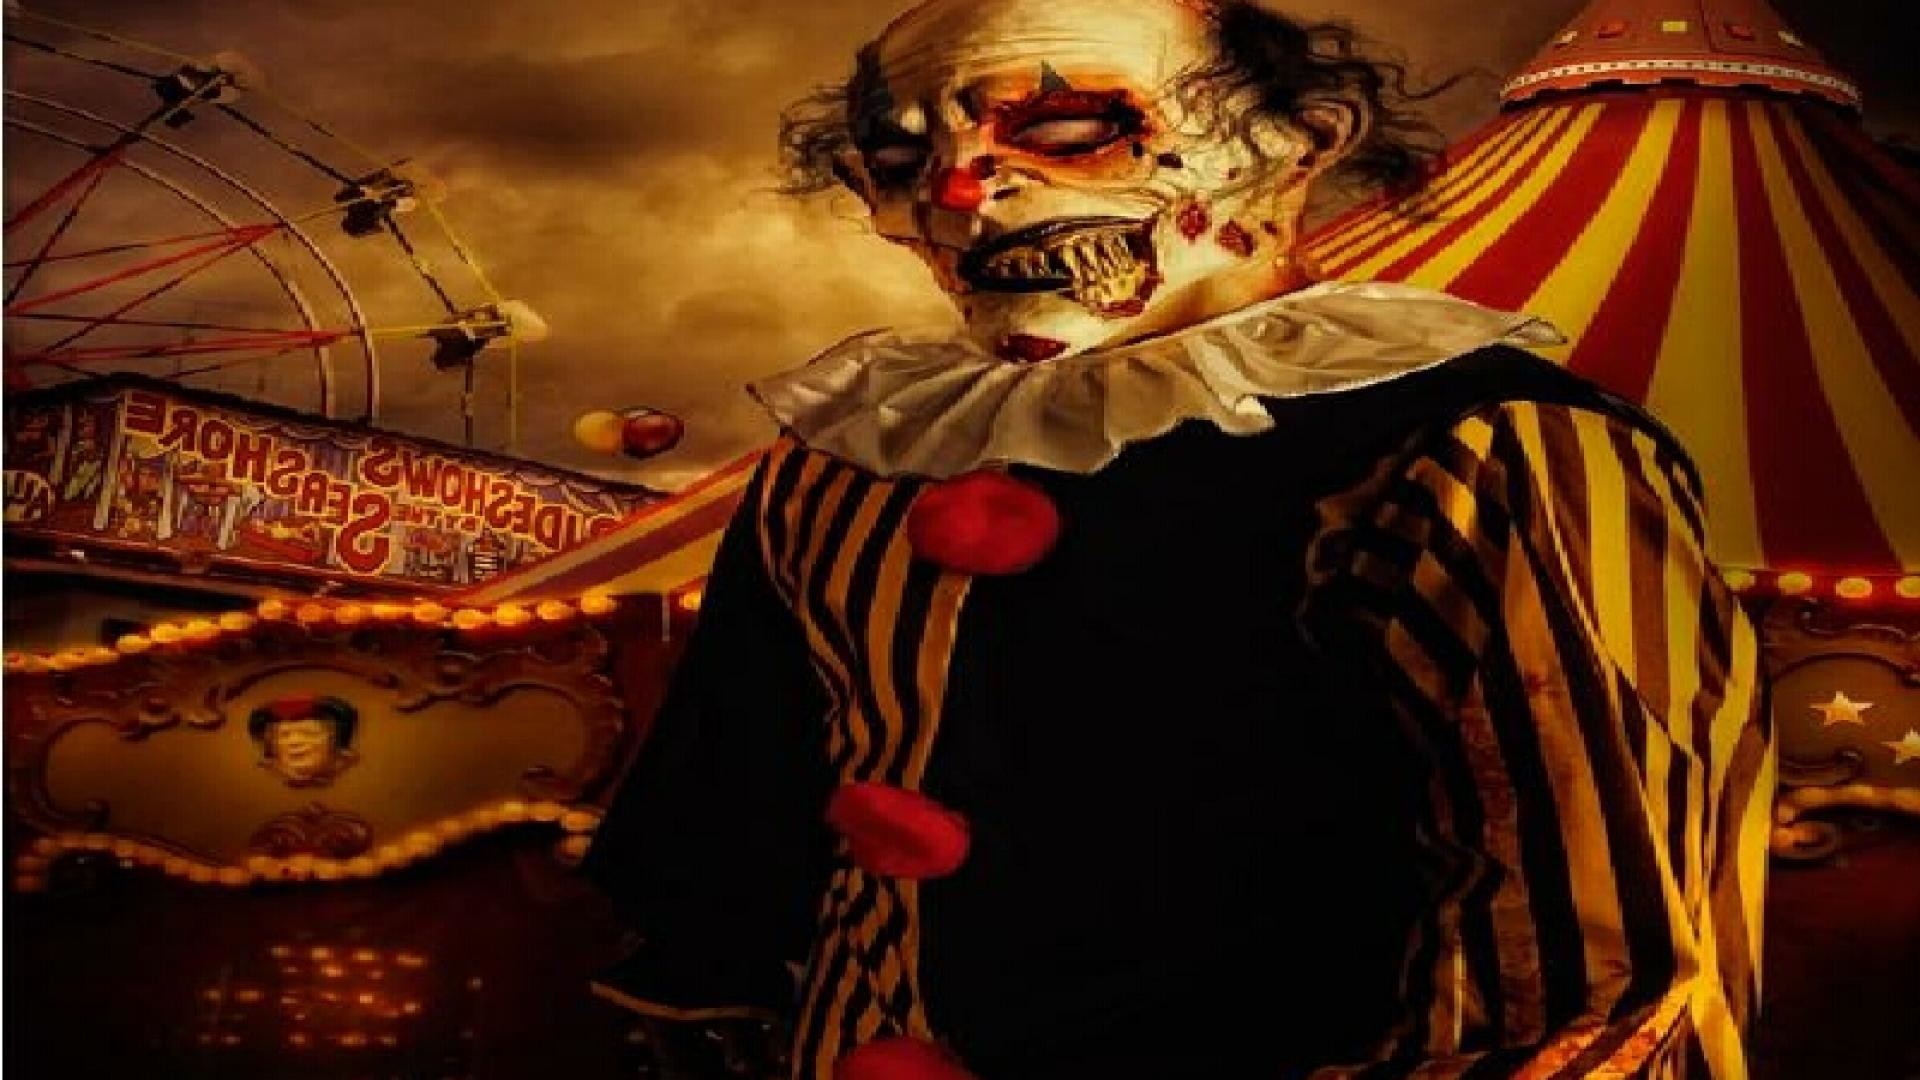 Res: 1920x1080, 0 Scary Clown Wallpaper Screensavers Free Scary Clown Wallpapers Free  Iphone Real Ghost Mask Smile Doll.